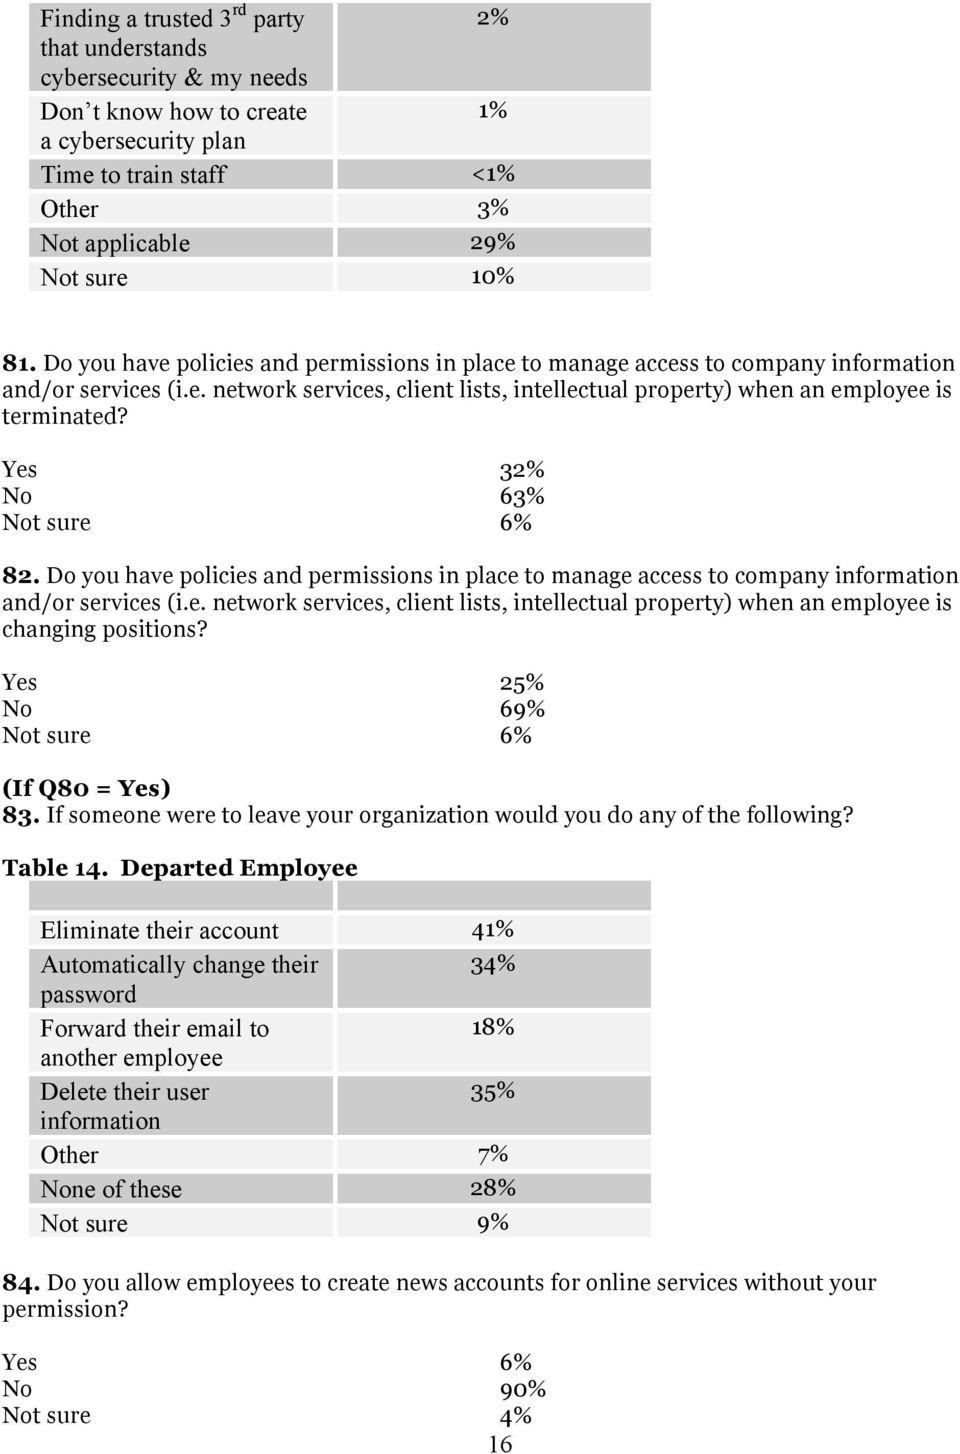 Yes 32% No 63% Not sure 6% 82. Do you have policies and permissions in place to manage access to company information and/or services (i.e. network services, client lists, intellectual property) when an employee is changing positions?